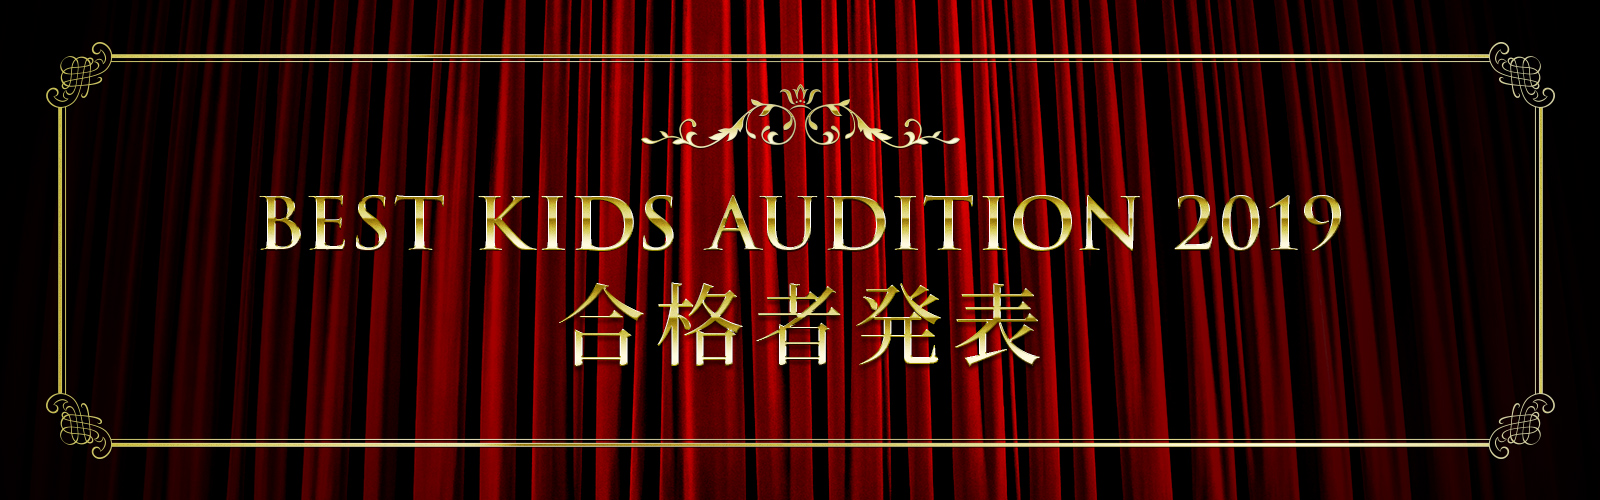 BEST KIDS AUDITION2019合格者発表